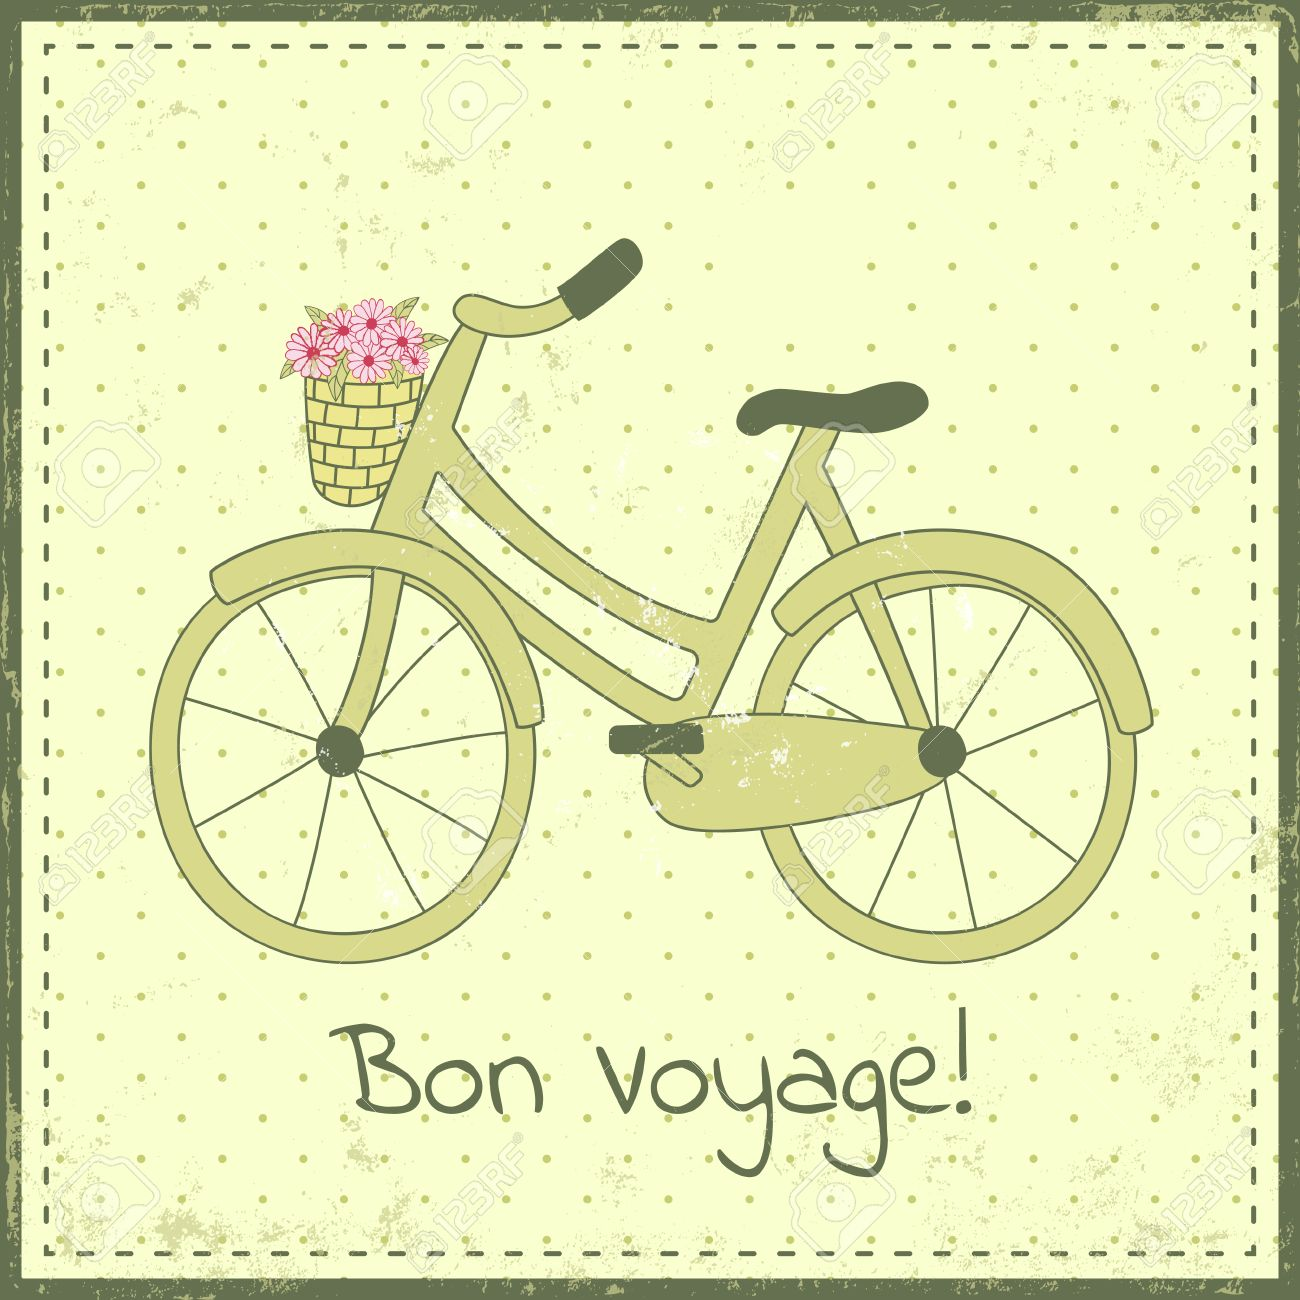 Greeting card template with bike illustration and bon voyage greeting card template with bike illustration and kristyandbryce Image collections